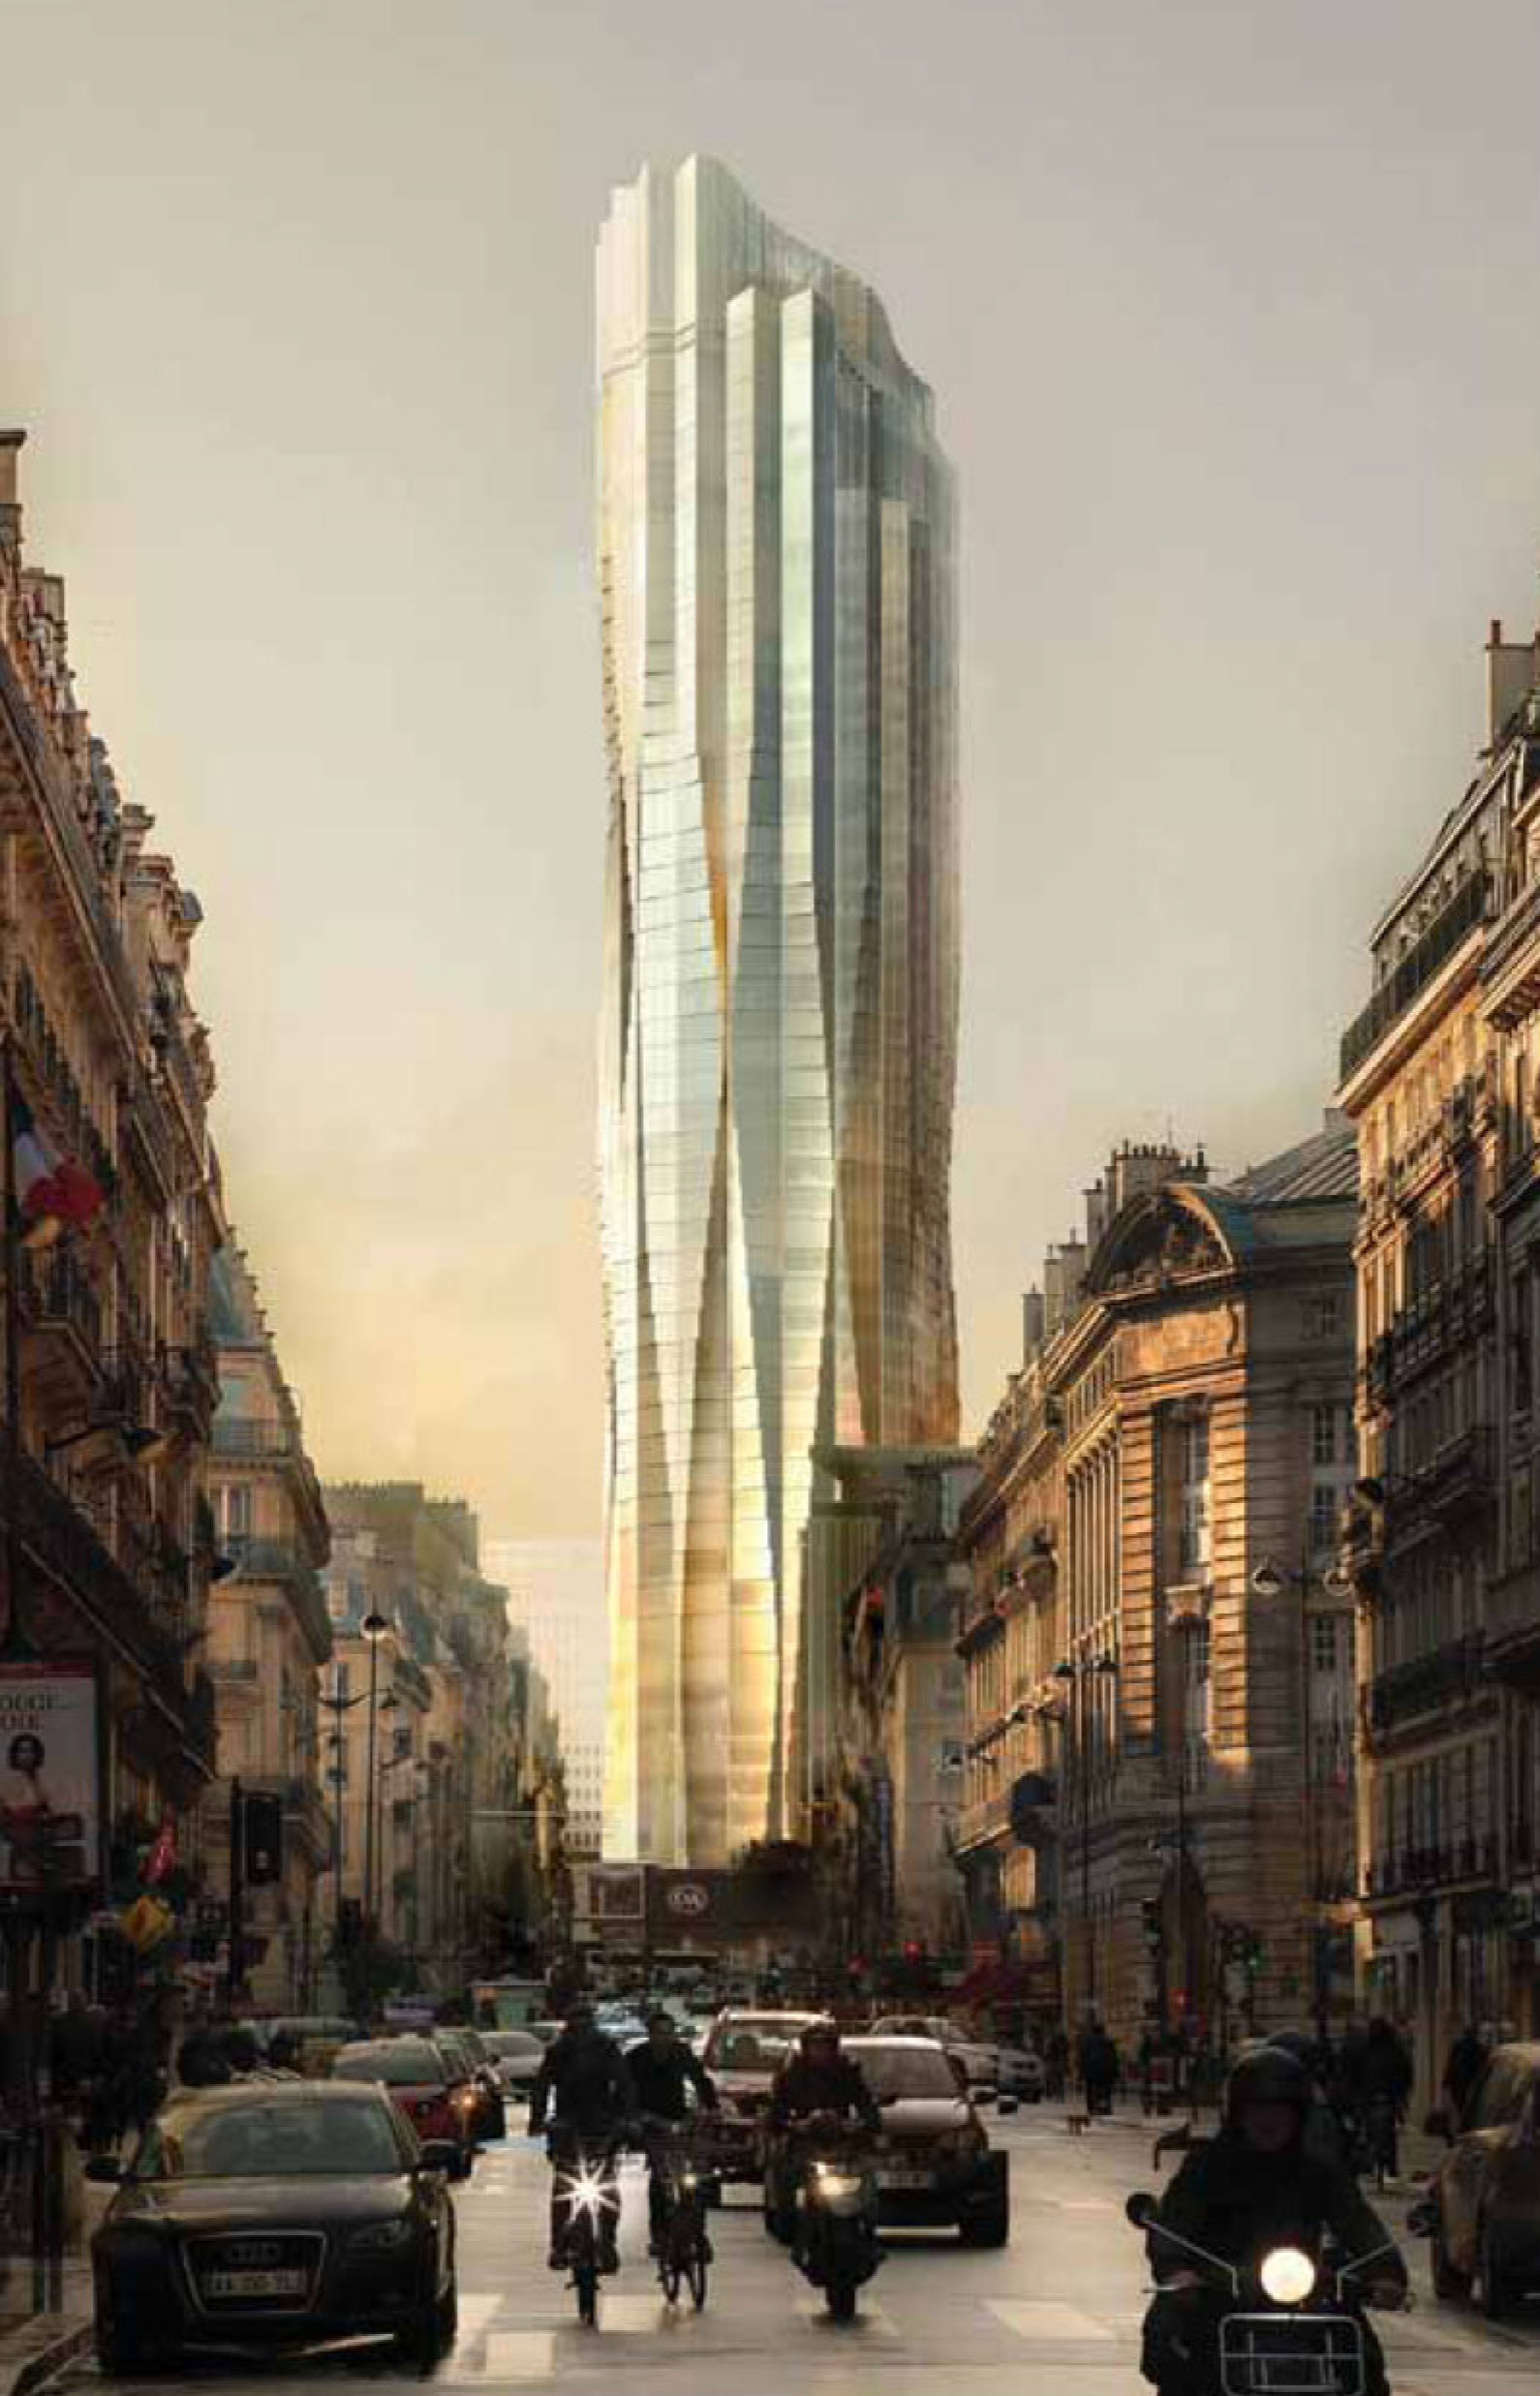 nouvelle aom wins international architectural competition